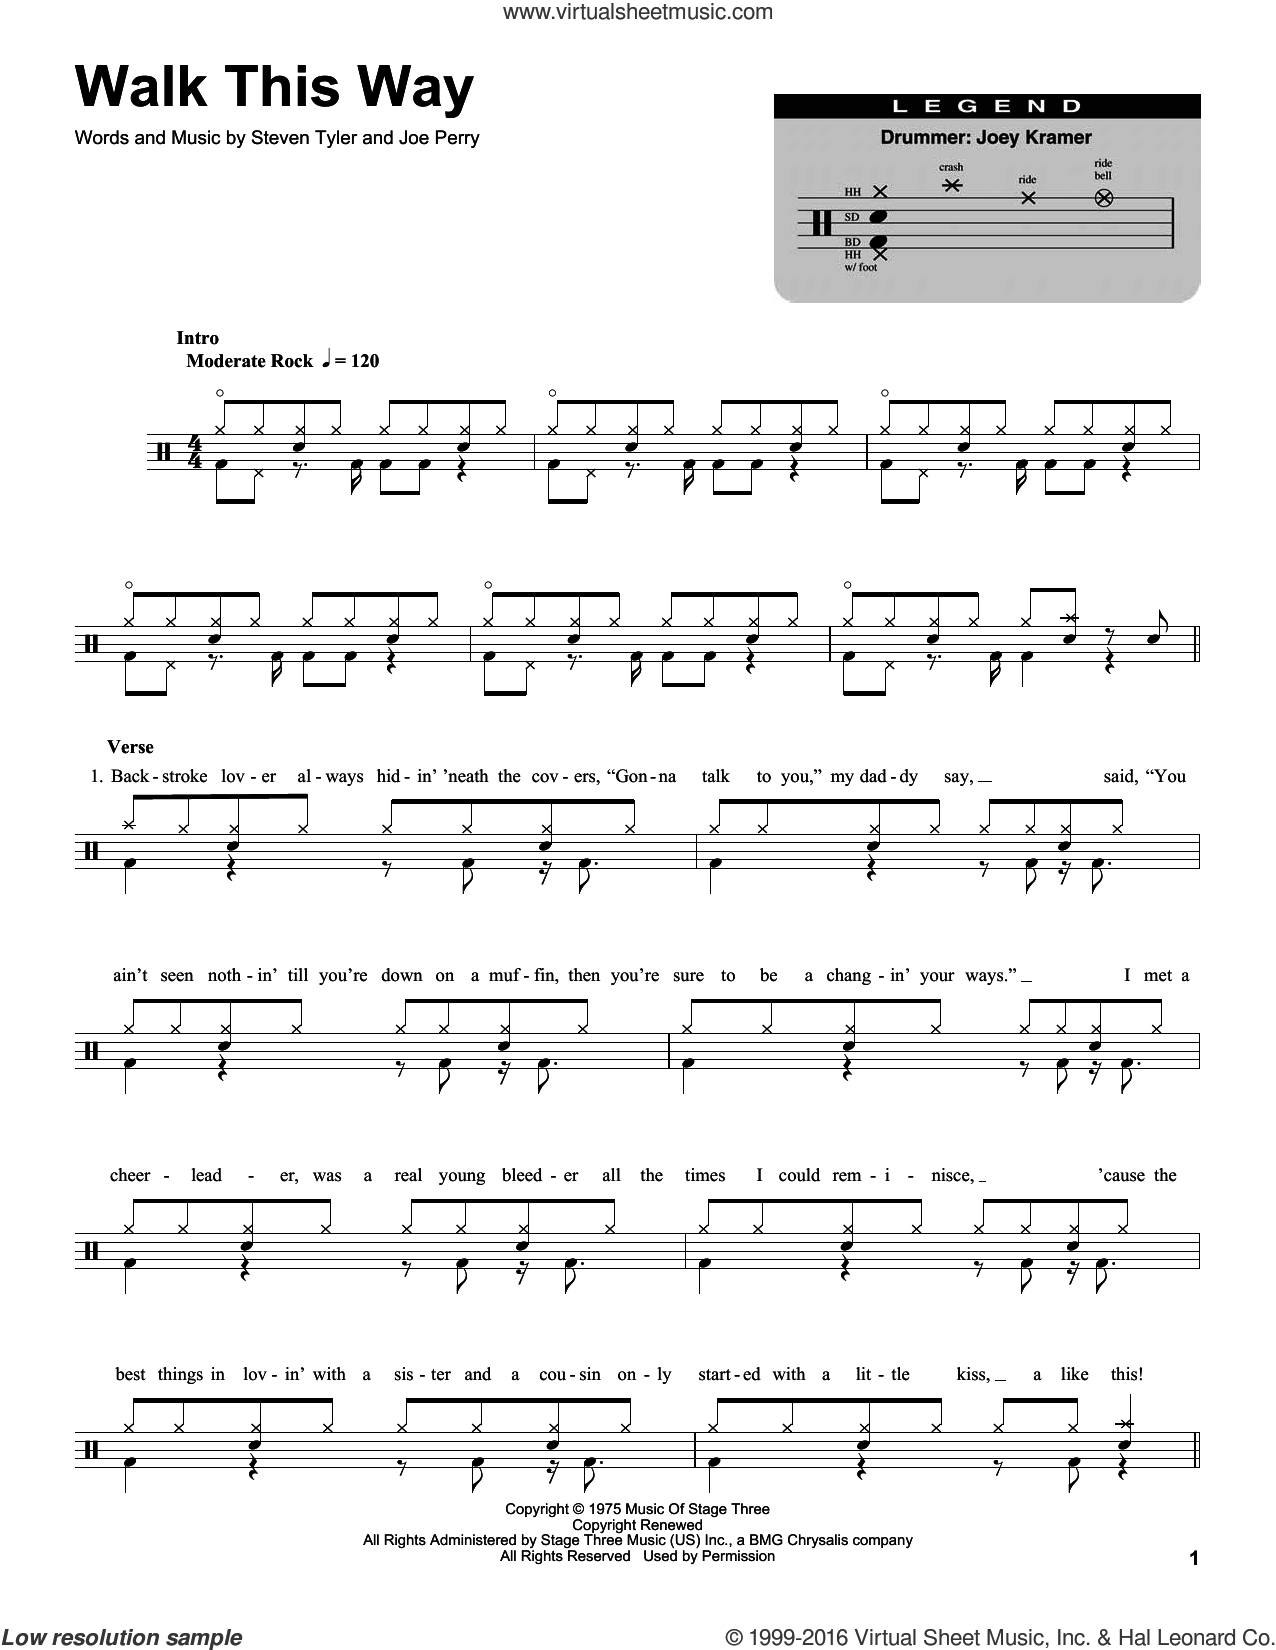 Walk This Way sheet music for drums by Aerosmith, Run D.M.C., Joe Perry and Steven Tyler, intermediate skill level